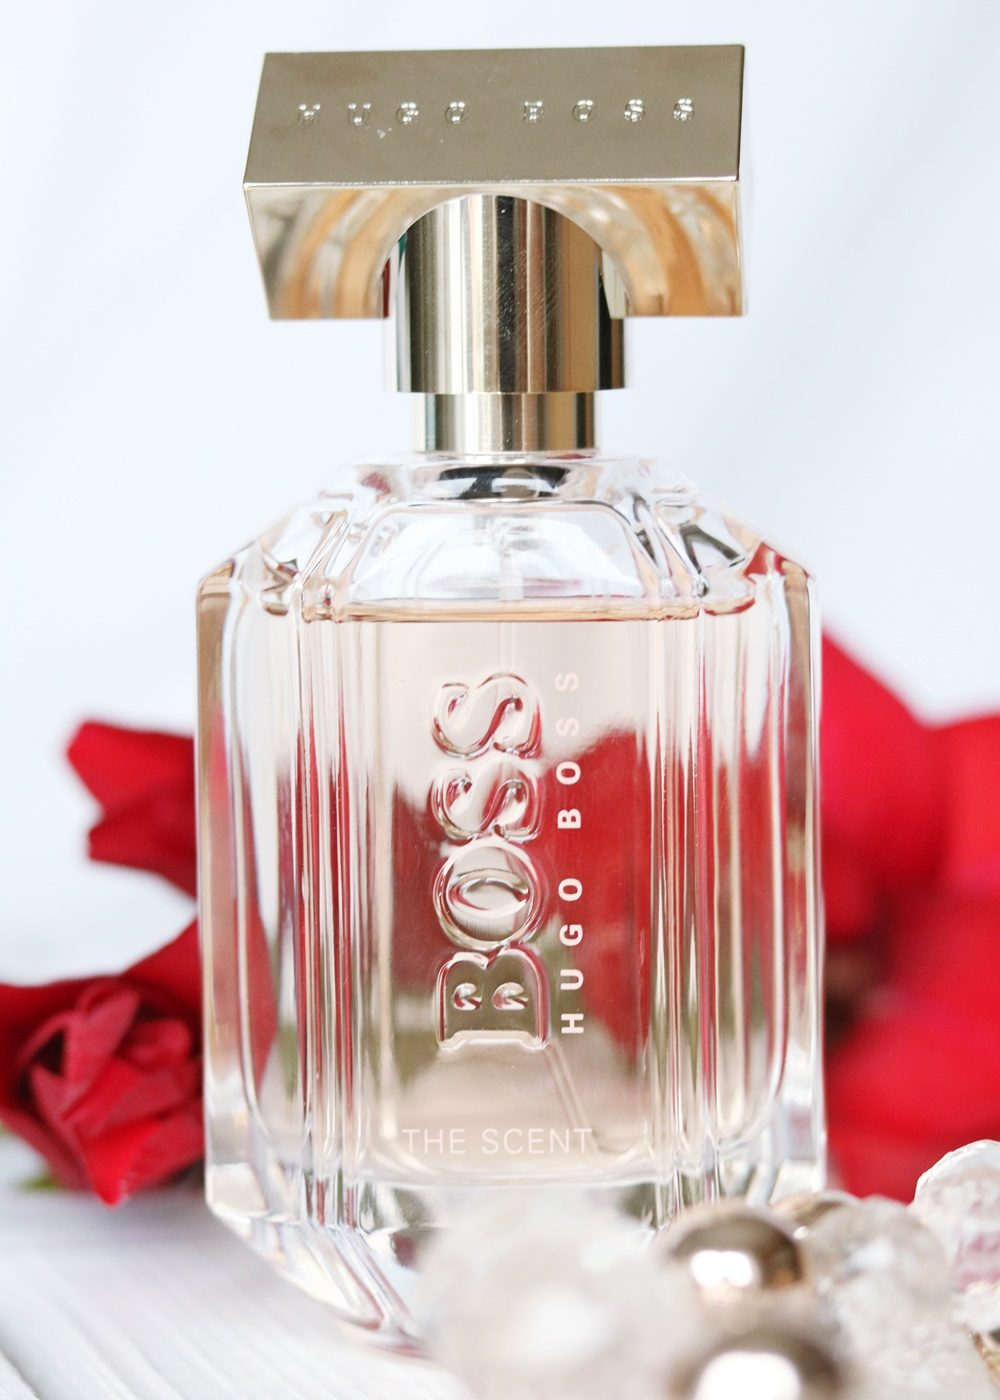 Hugo Boss Damenduft Parfum The Scent (4)